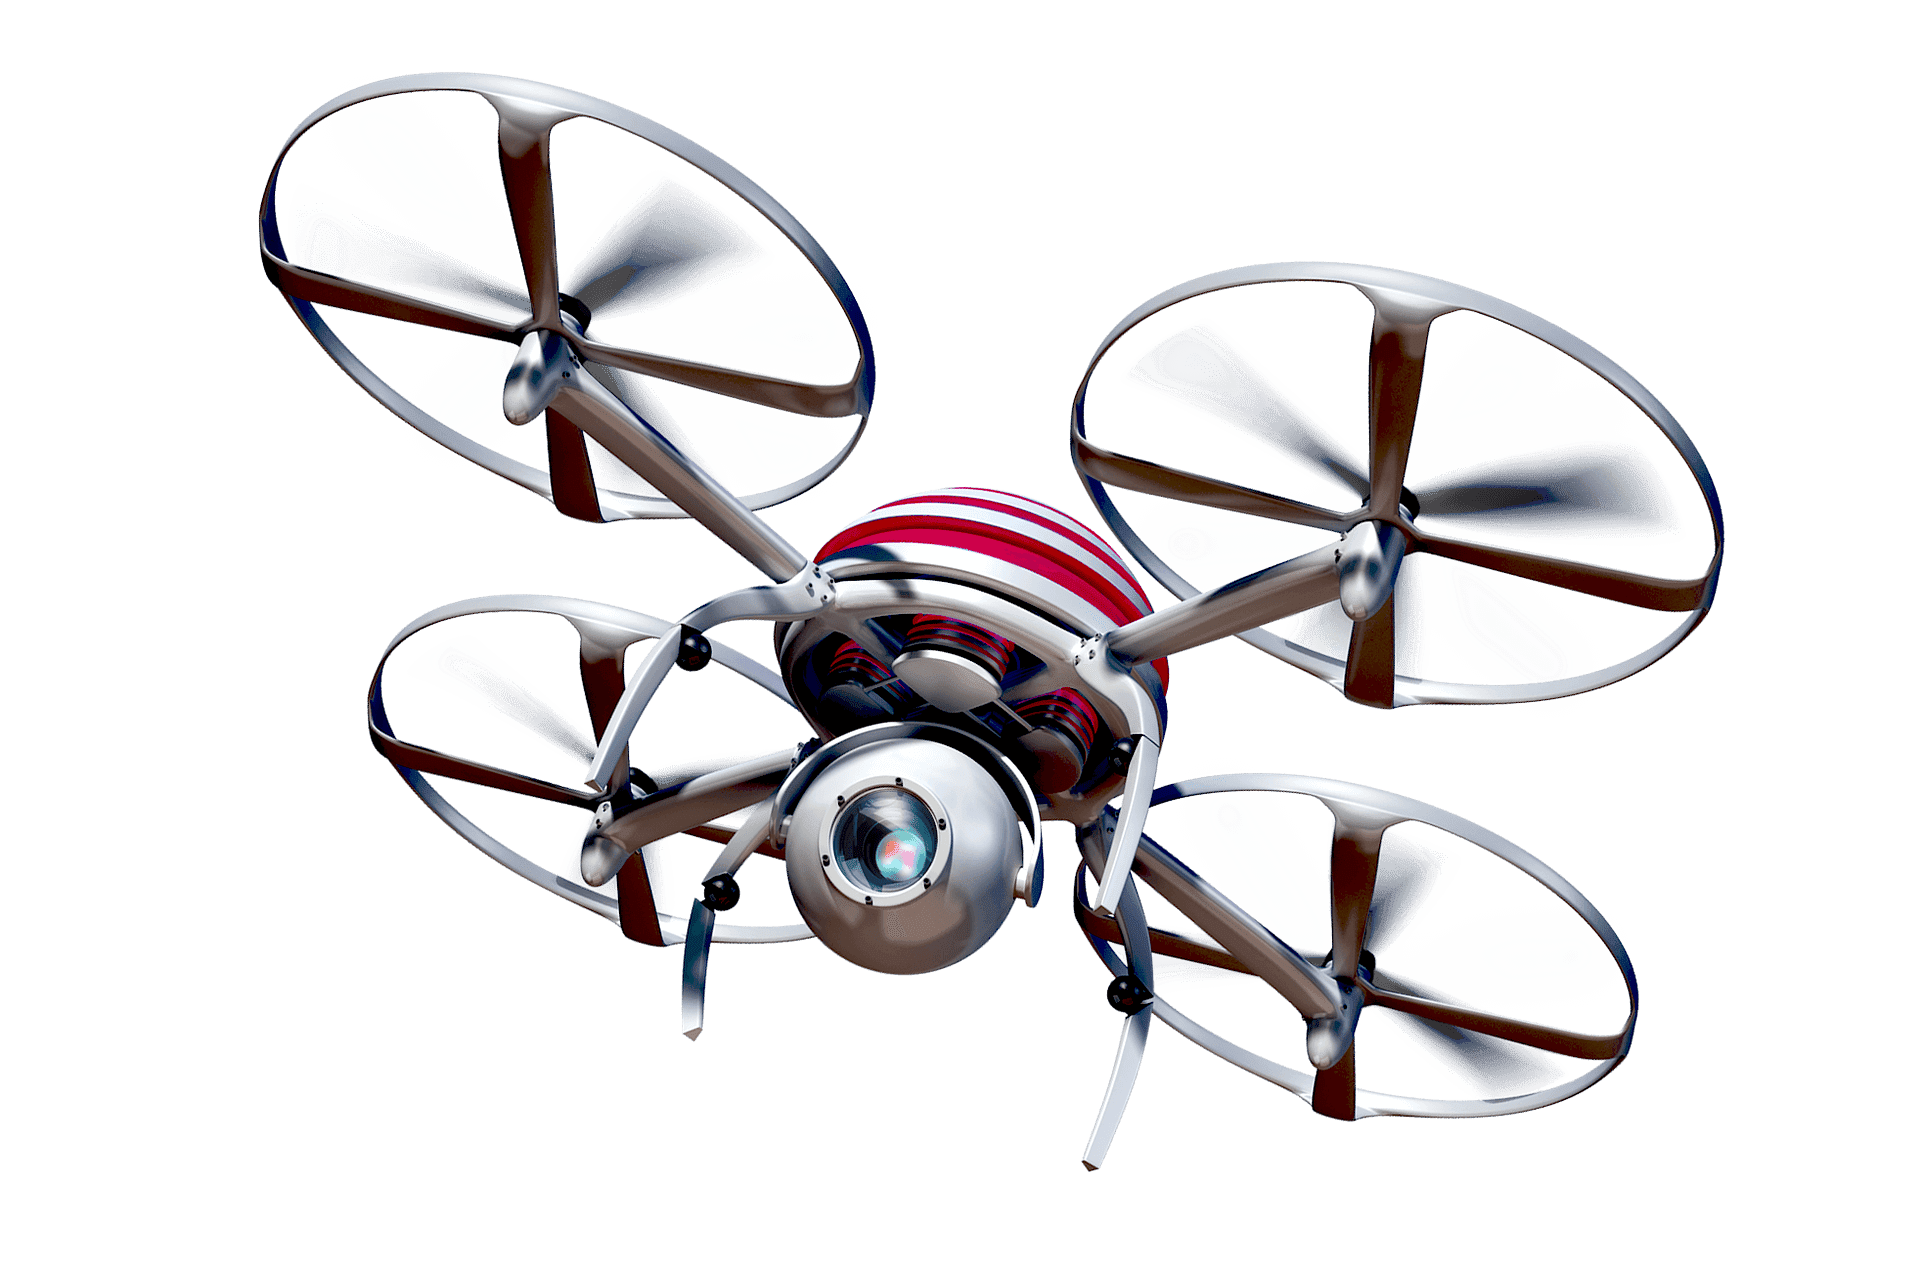 content/es-es/images/repository/isc/2020/a-spy-drone-with-large-camera-lens.png